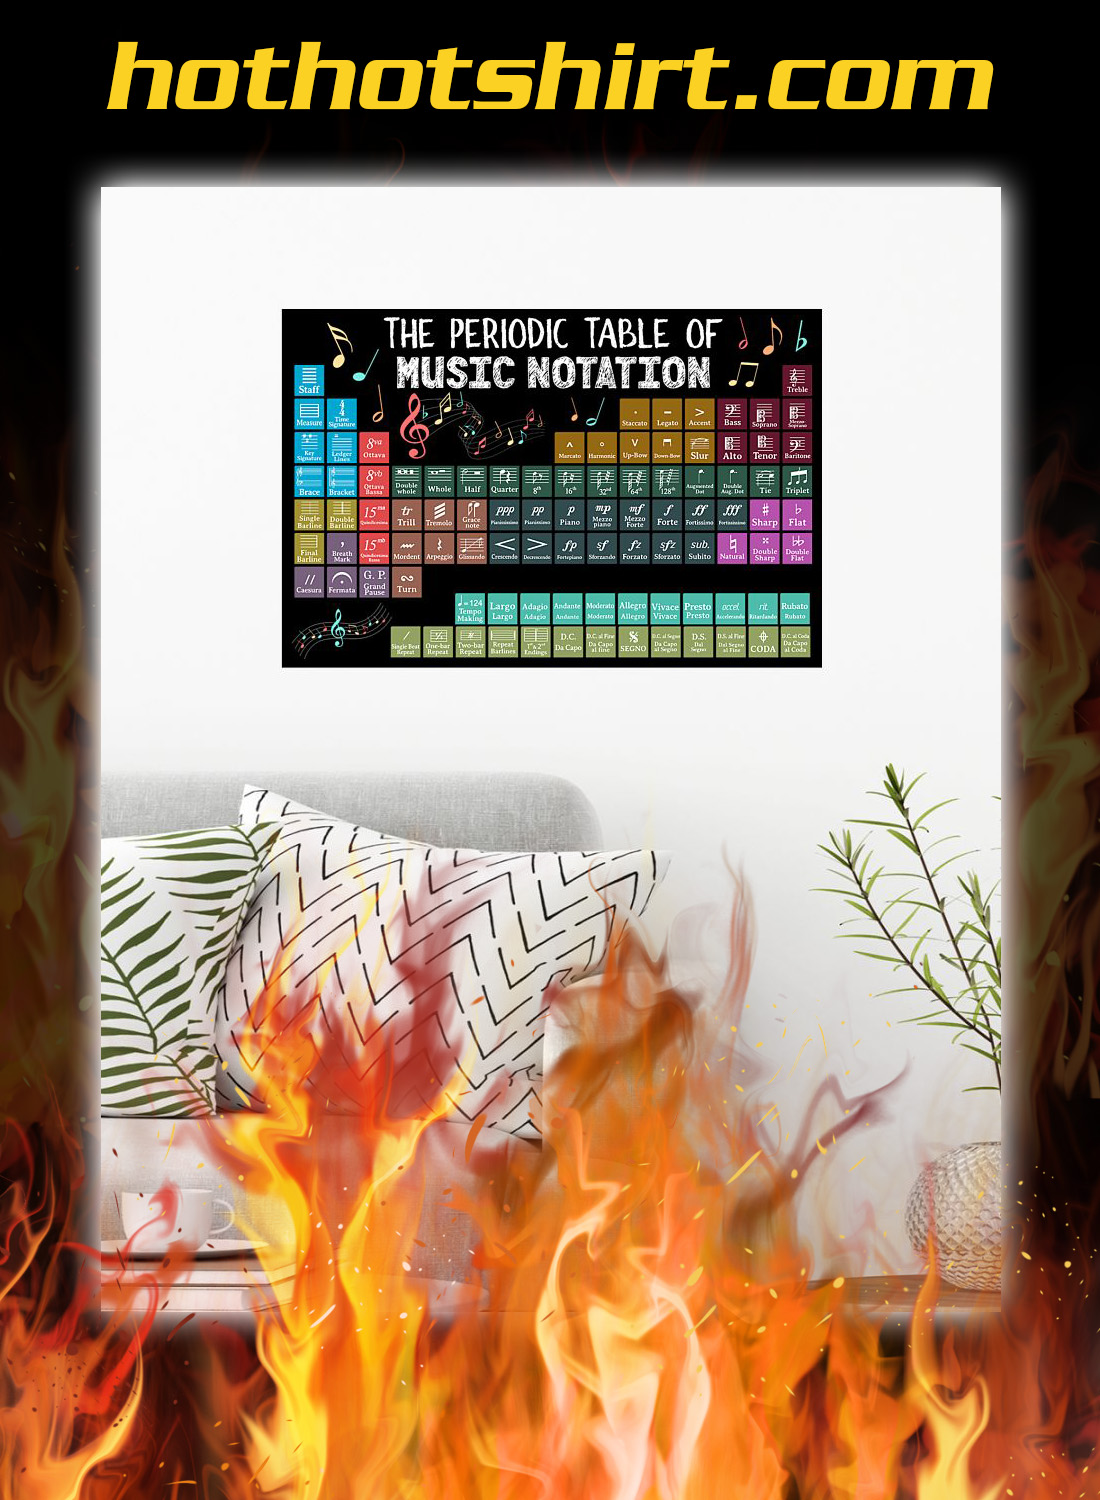 The periodic table of music notation poster 1